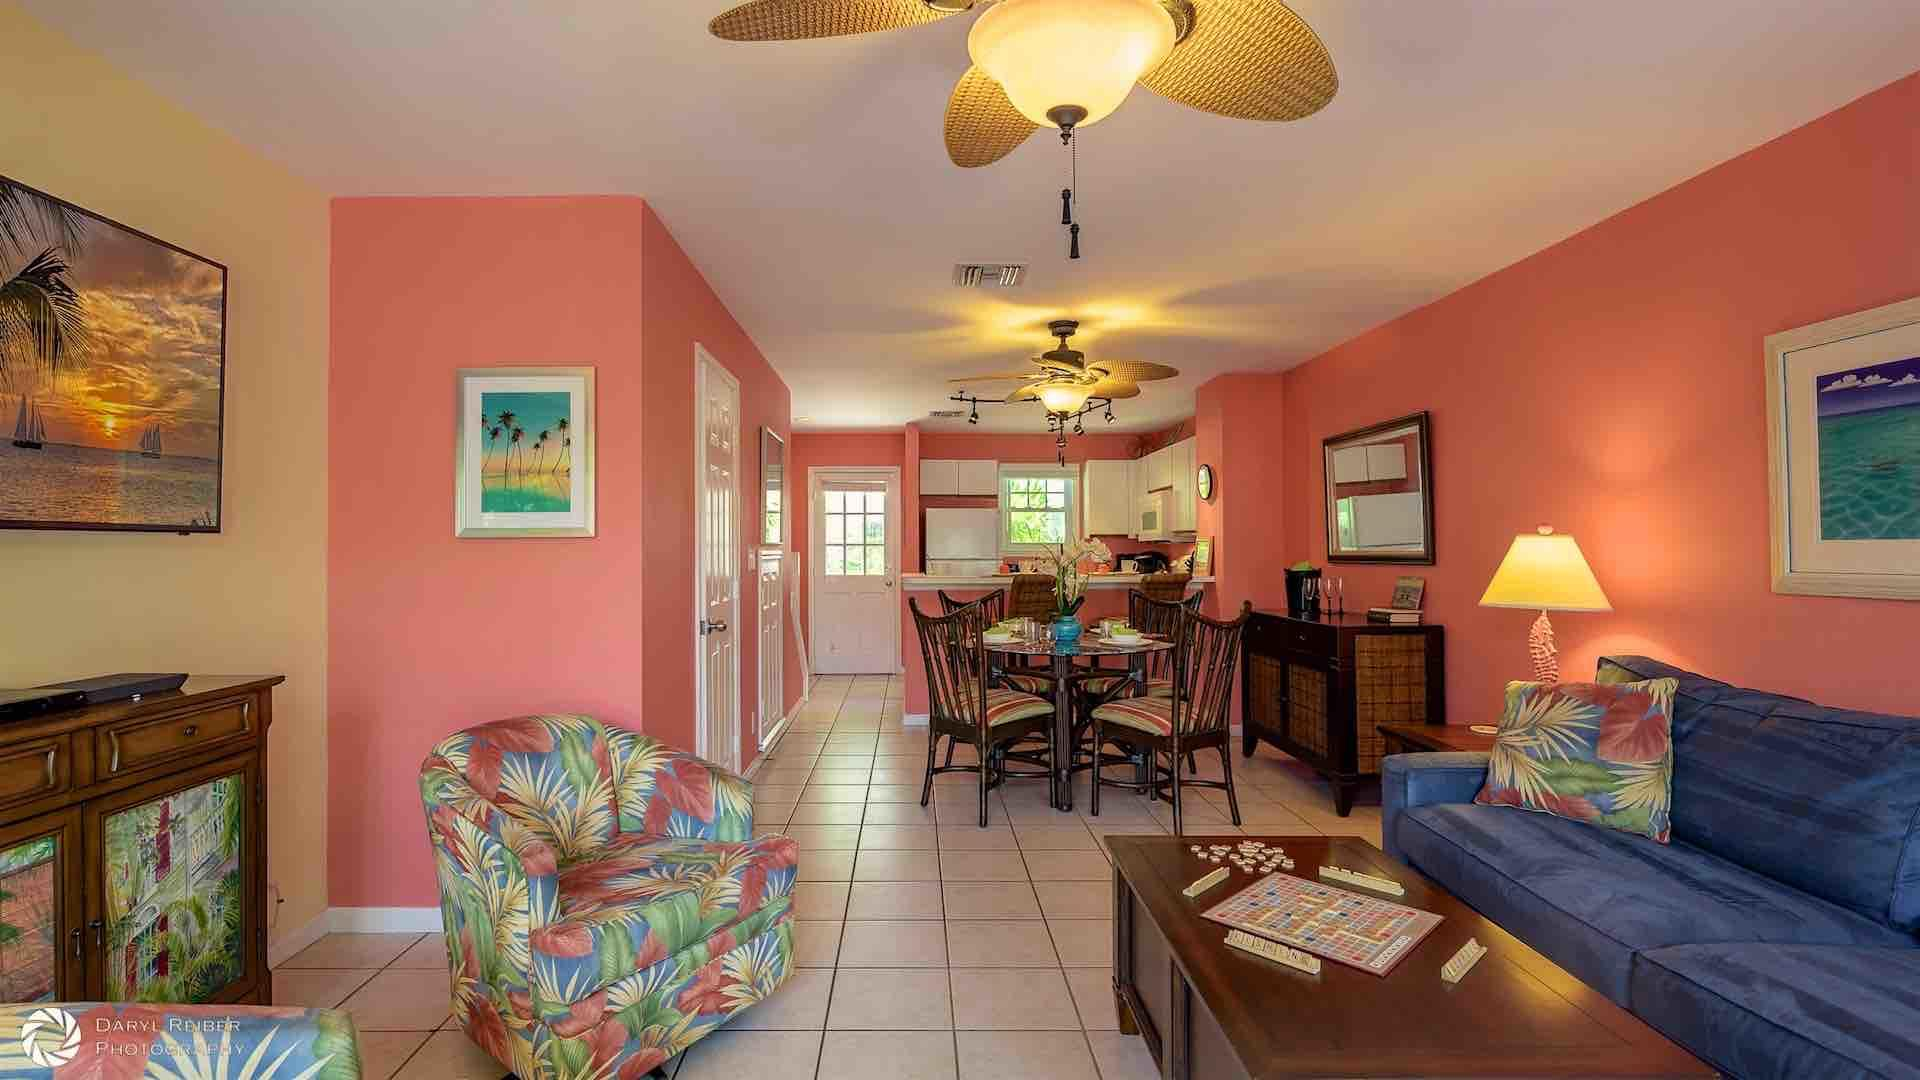 The first floor has an open layout, perfect for entertaining...